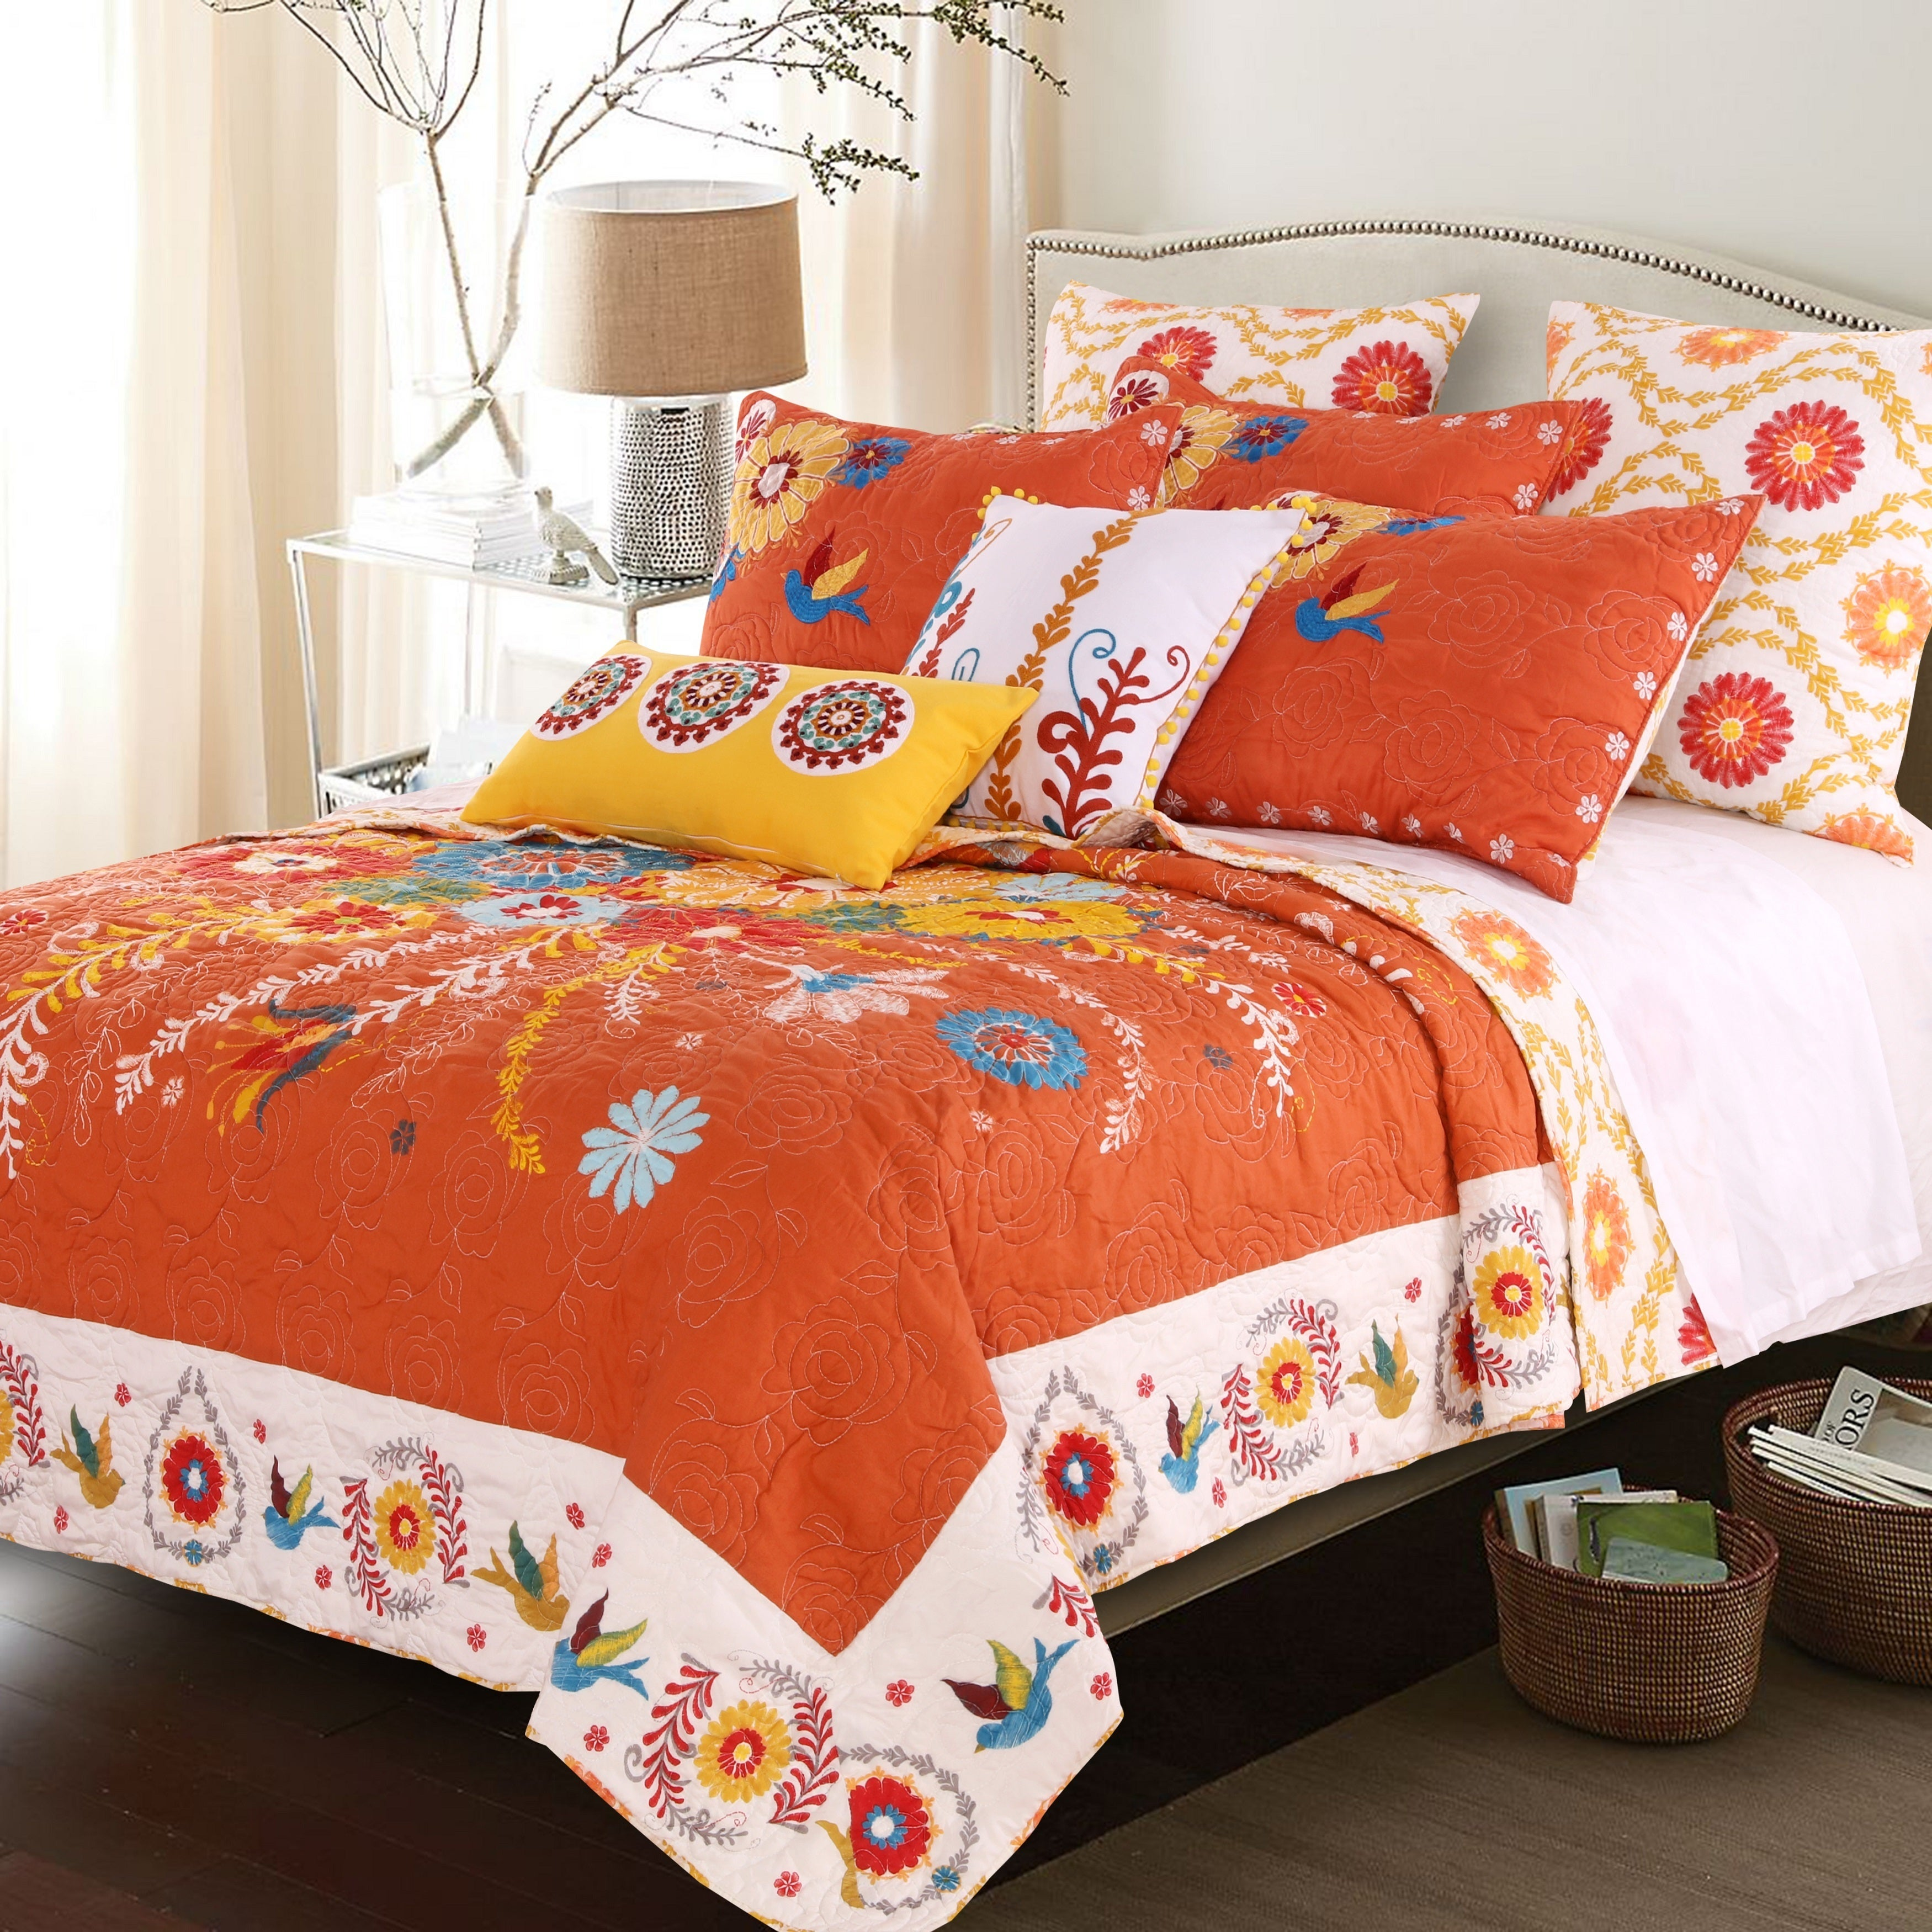 new coverlet quilt listcloseup annabel sweet detailed image home set quilted